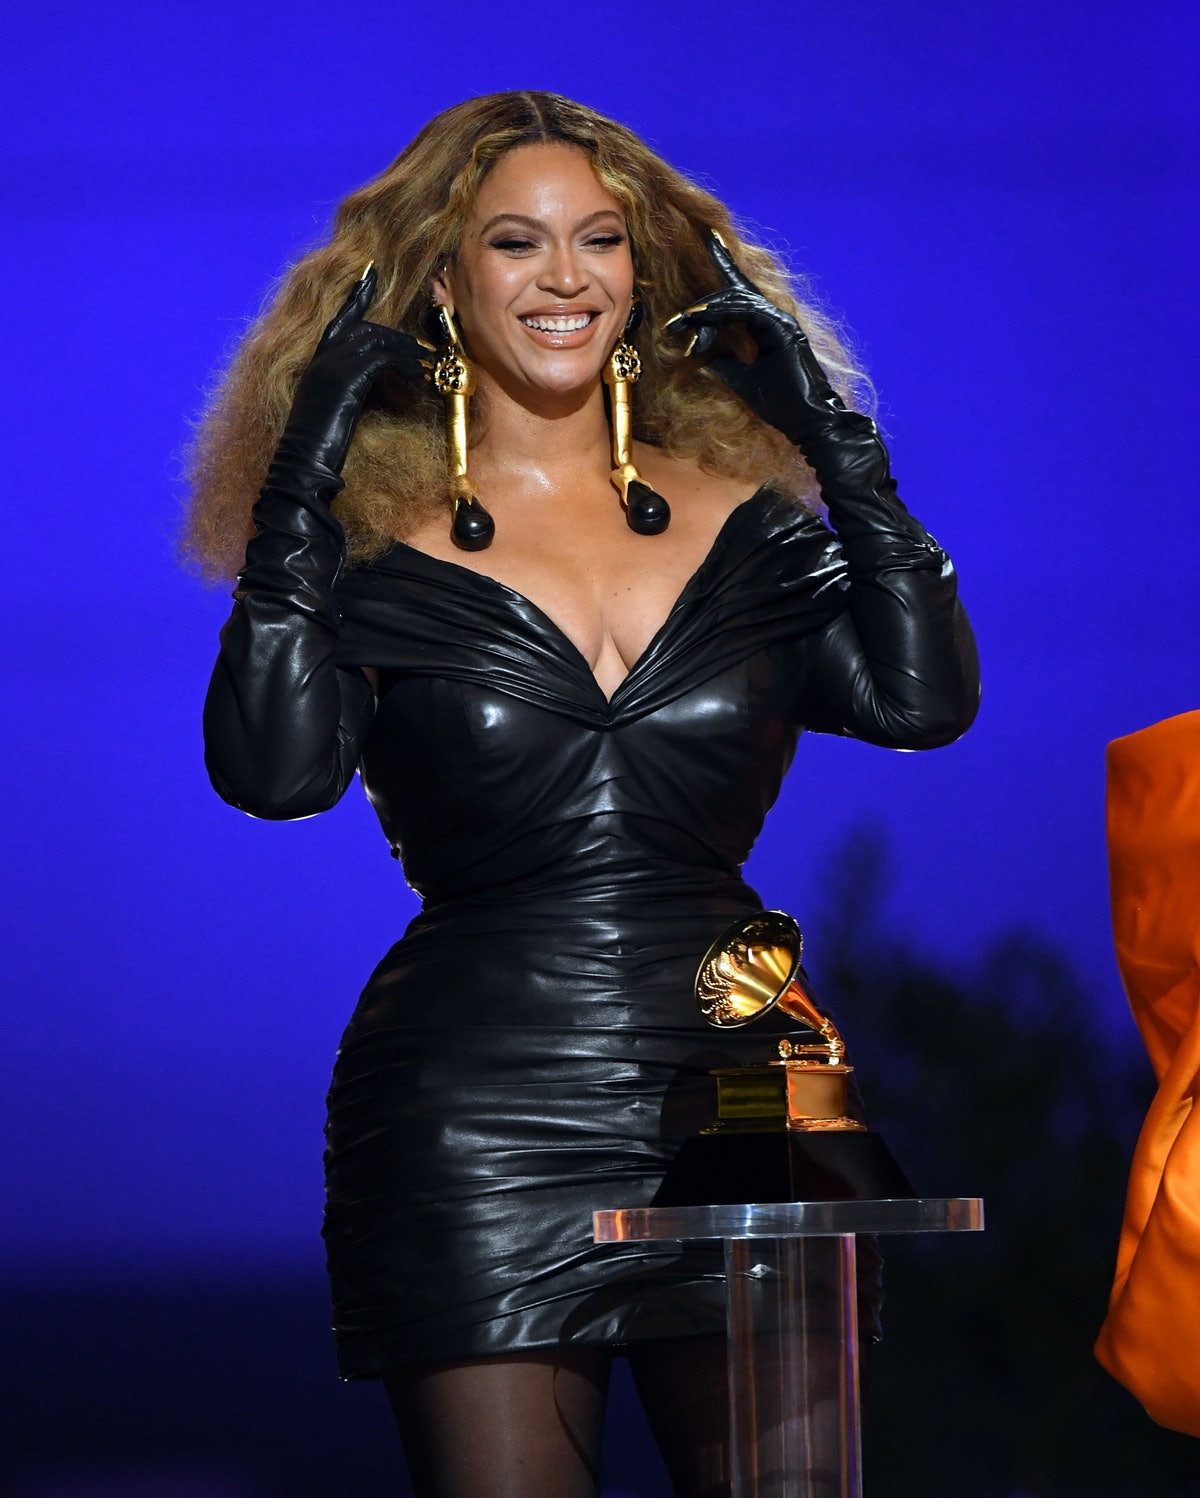 LOS ANGELES, CALIFORNIA - MARCH 14: Beyoncé accepts the Best Rap Performance award for 'Savage' onstage during the 63rd Annual GRAMMY Awards at Los Angeles Convention Center on March 14, 2021 in Los Angeles, California. (Photo by Kevin Winter/Getty Images for The Recording Academy)